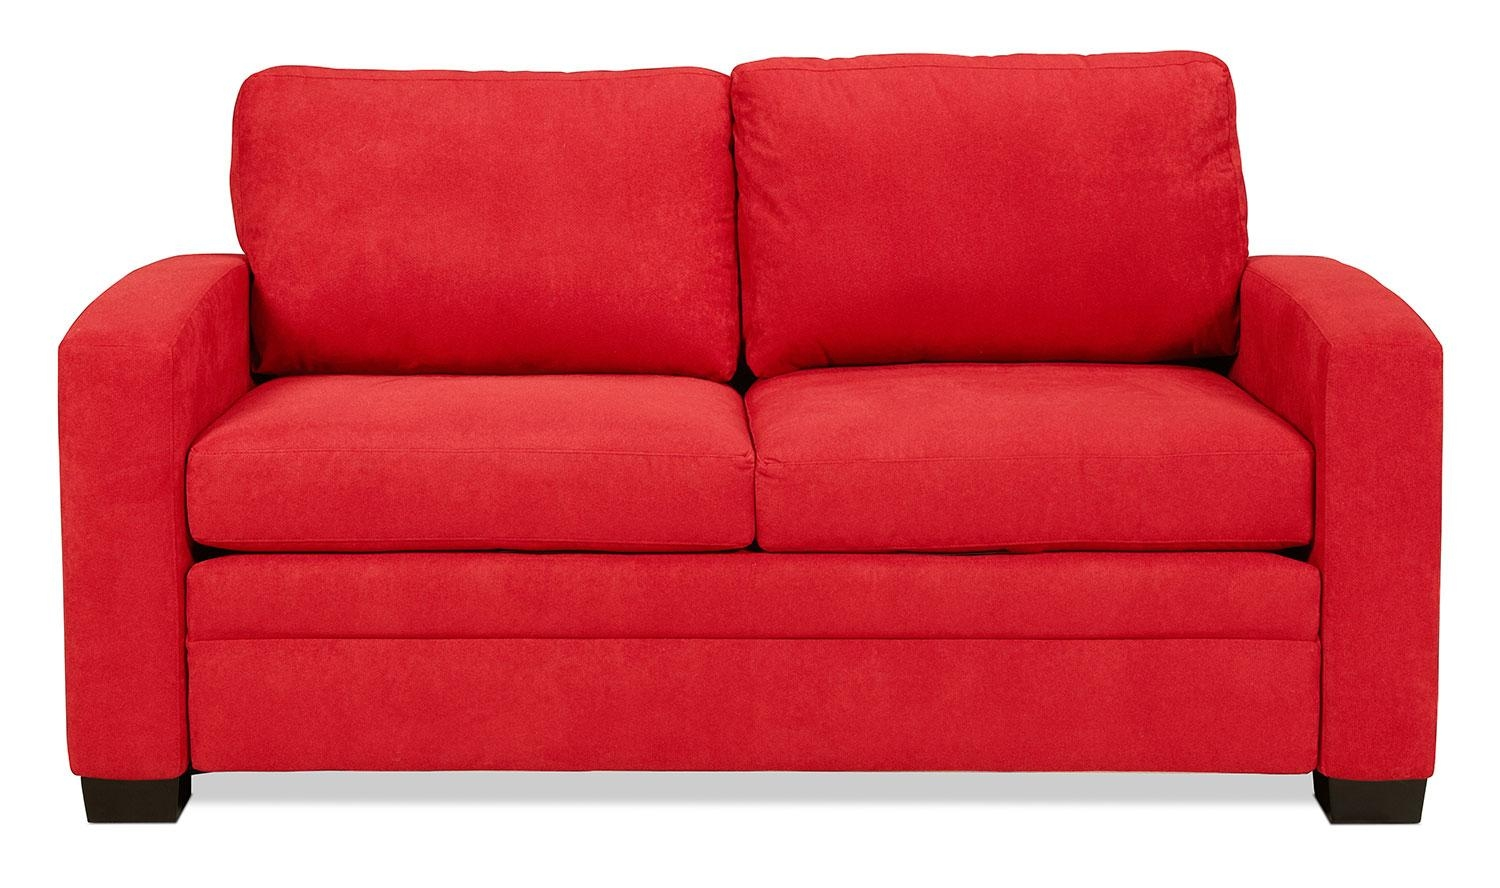 Levin Signature Full Sleeper Sofa – Chili Red | Levin Furniture With Regard To Red Sleeper Sofa (Image 8 of 20)